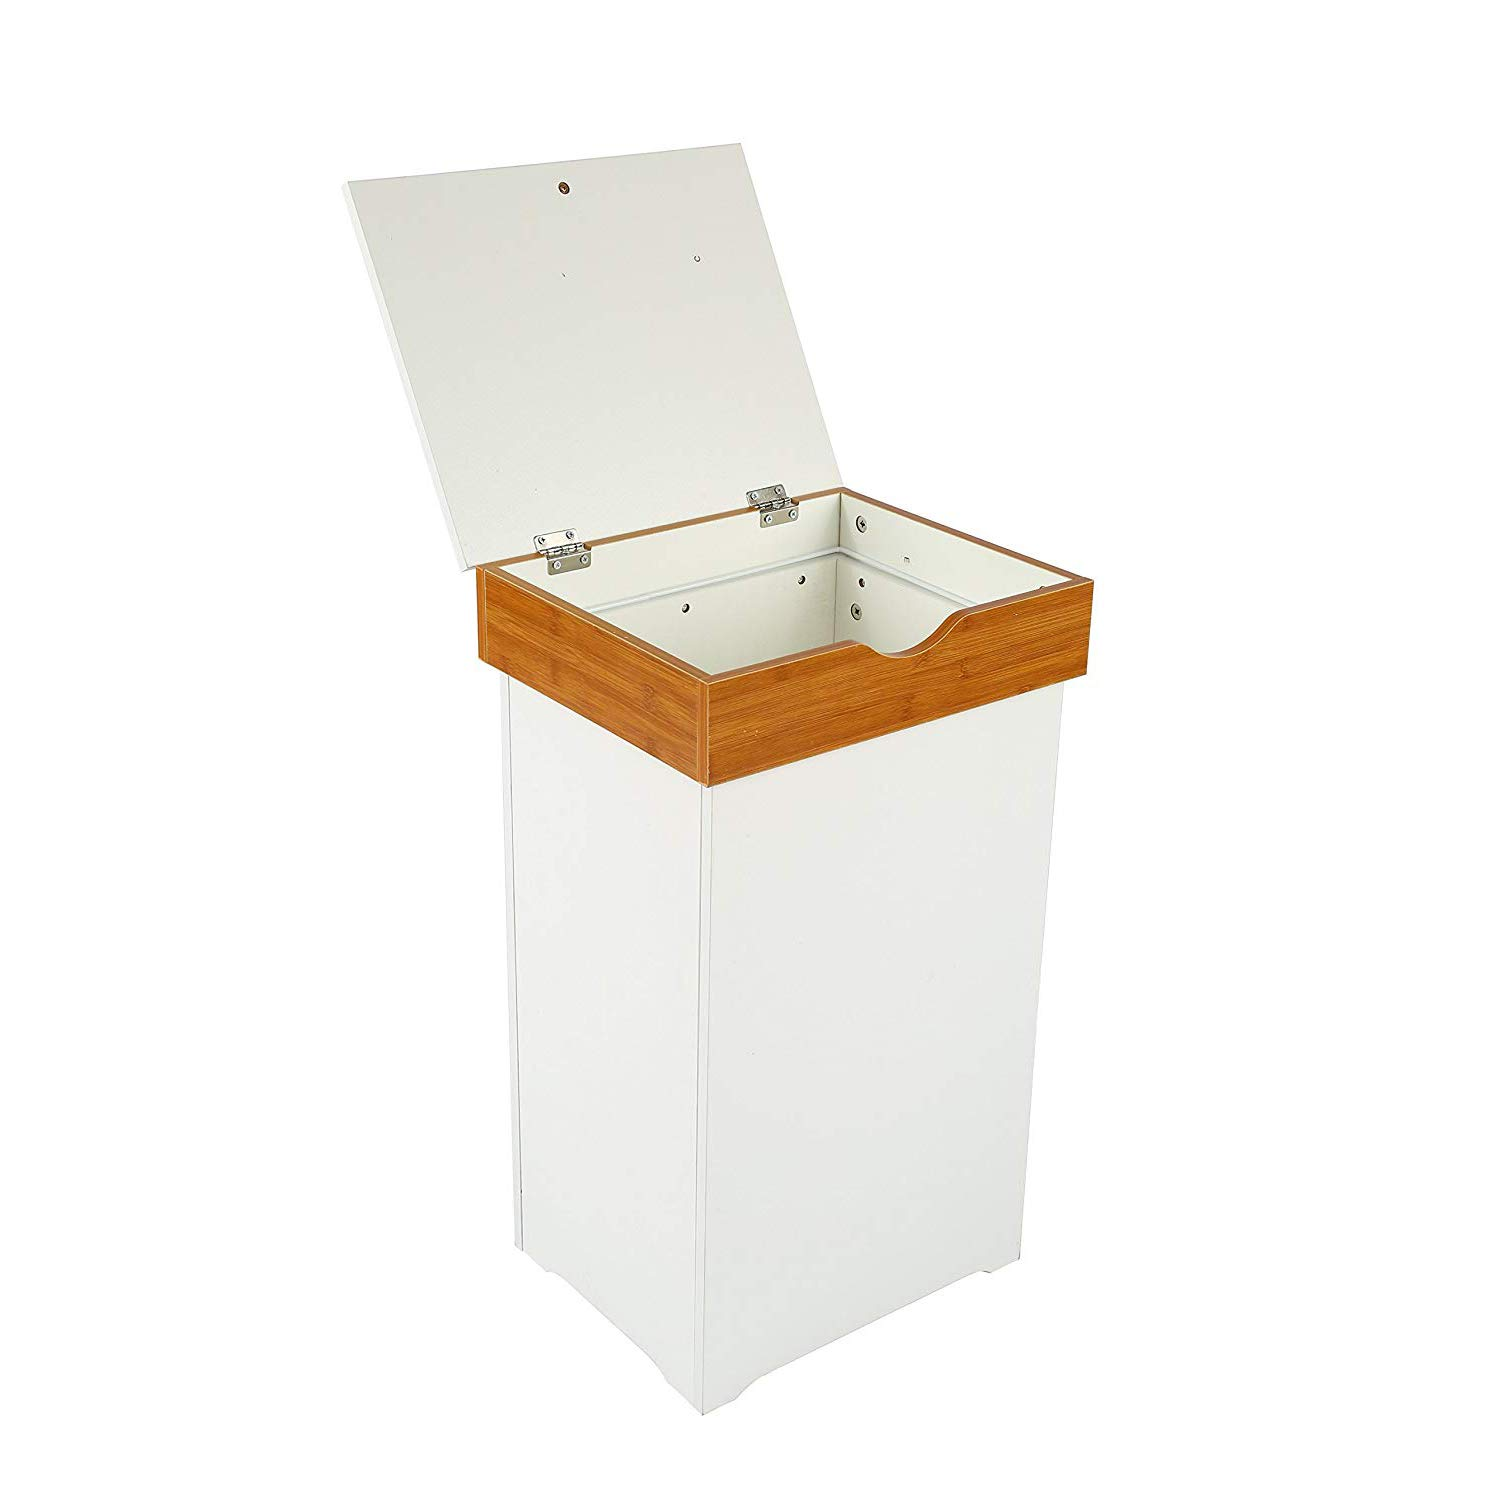 """MULSH Trash Can Gabage Bins Waste Container 13 Gallons Rececling Dustbin Litter Bin Cabinet Wooden Kitchen Wastebaskets Space Saver with Lid in White,16""""Wx13""""Dx26.5""""H"""